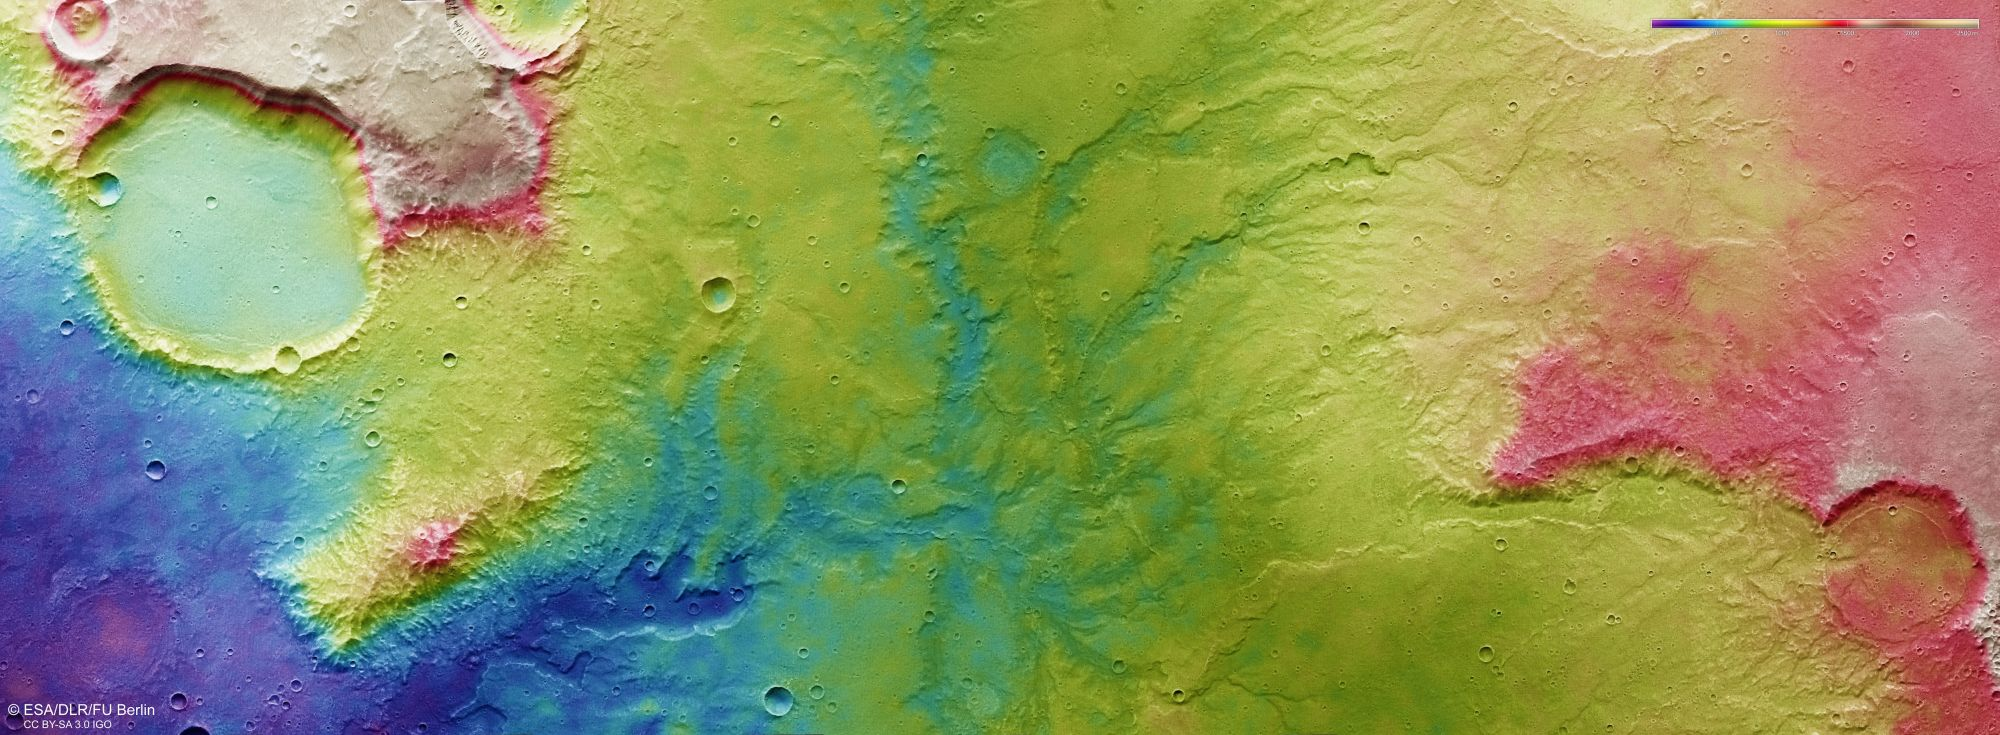 A topographic image of an area of anceint riverbeds on Mars. Created with data from the High-Resolution Stereo Camera on the Mars Express Orbiter. Image Credit: ESA/DLR/FU Berlin http://www.esa.int/spaceinimages/ESA_Multimedia/Copyright_Notice_Images